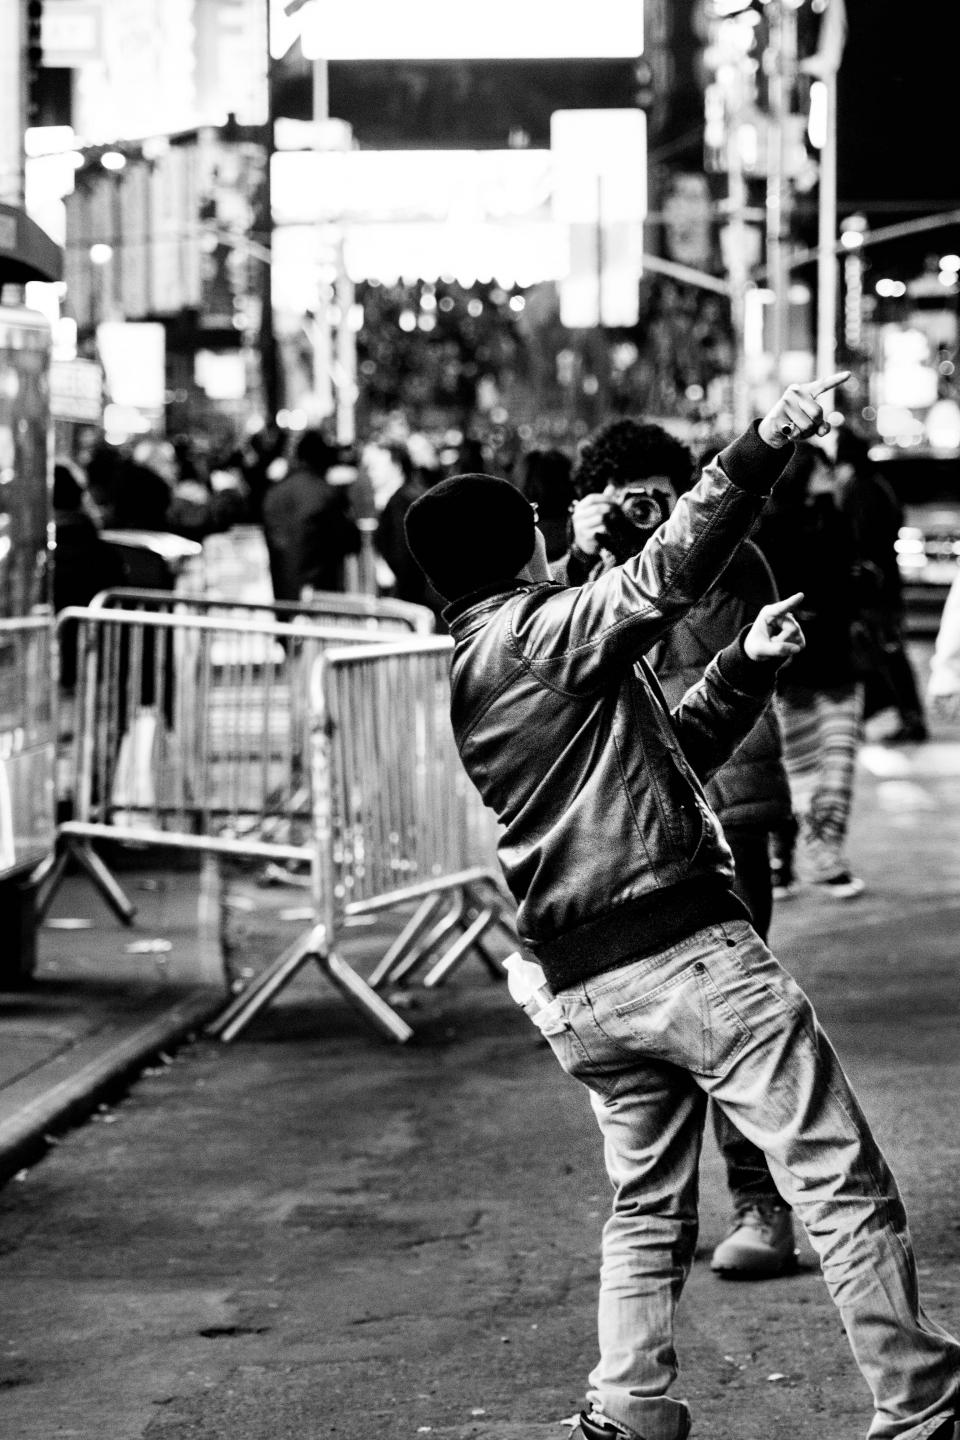 NYC New York City streets people crowd busy photographer photography black and white